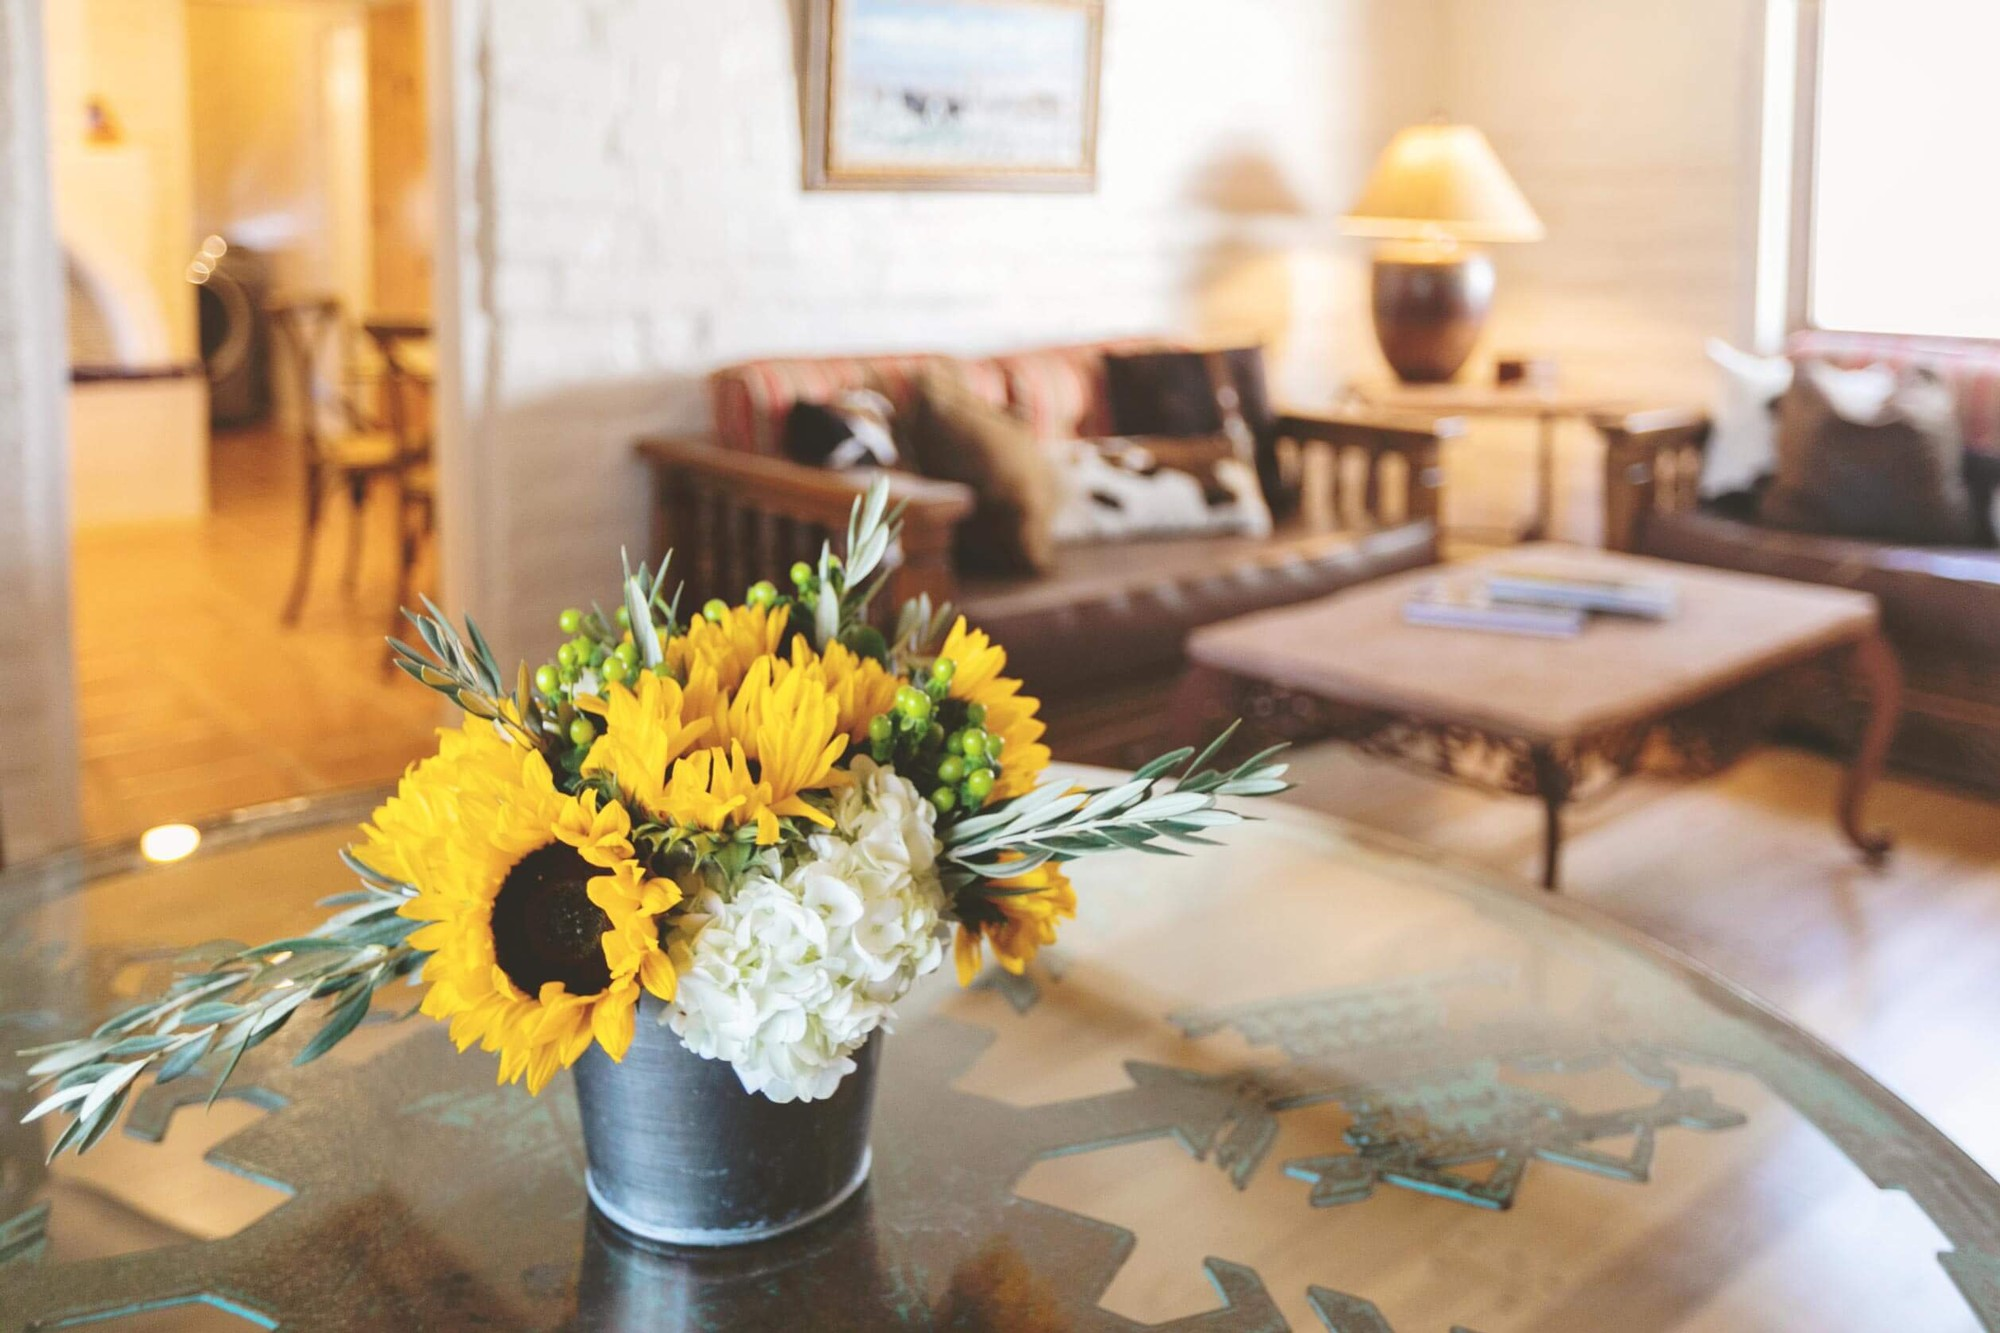 Sunflowers on a table in a mission-style living room.